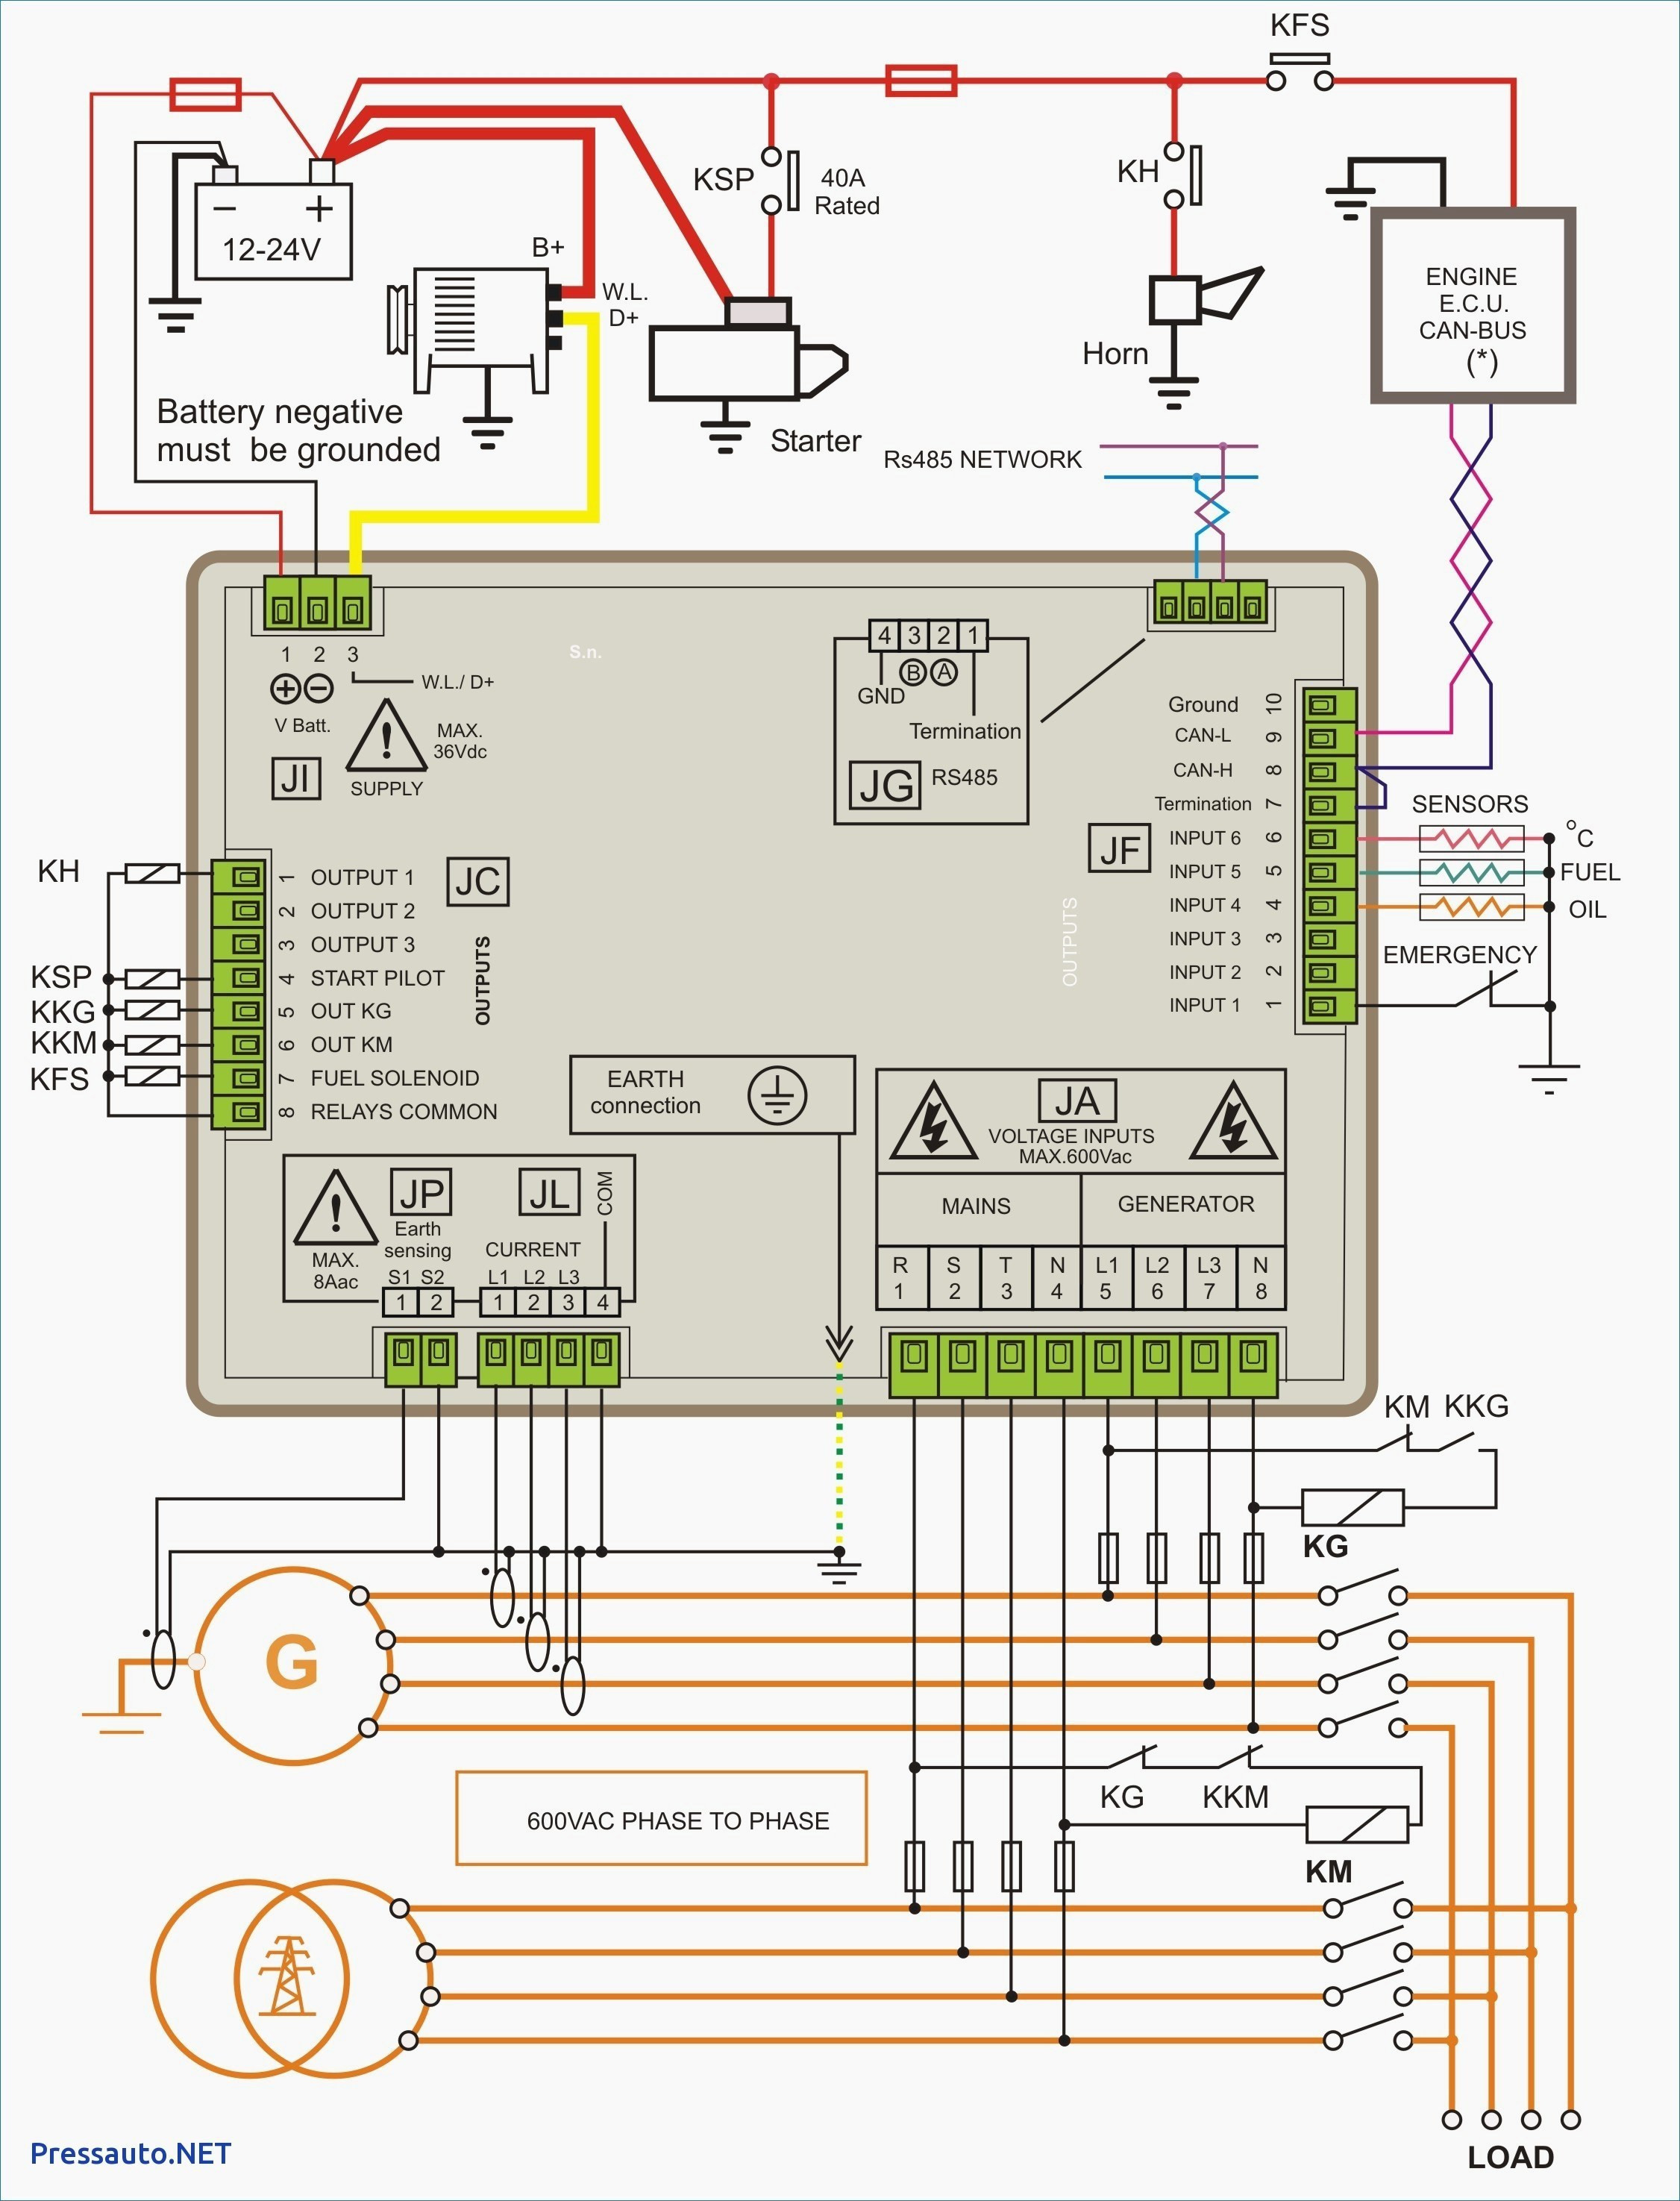 wiring diagram program funny exercise aircraft software download